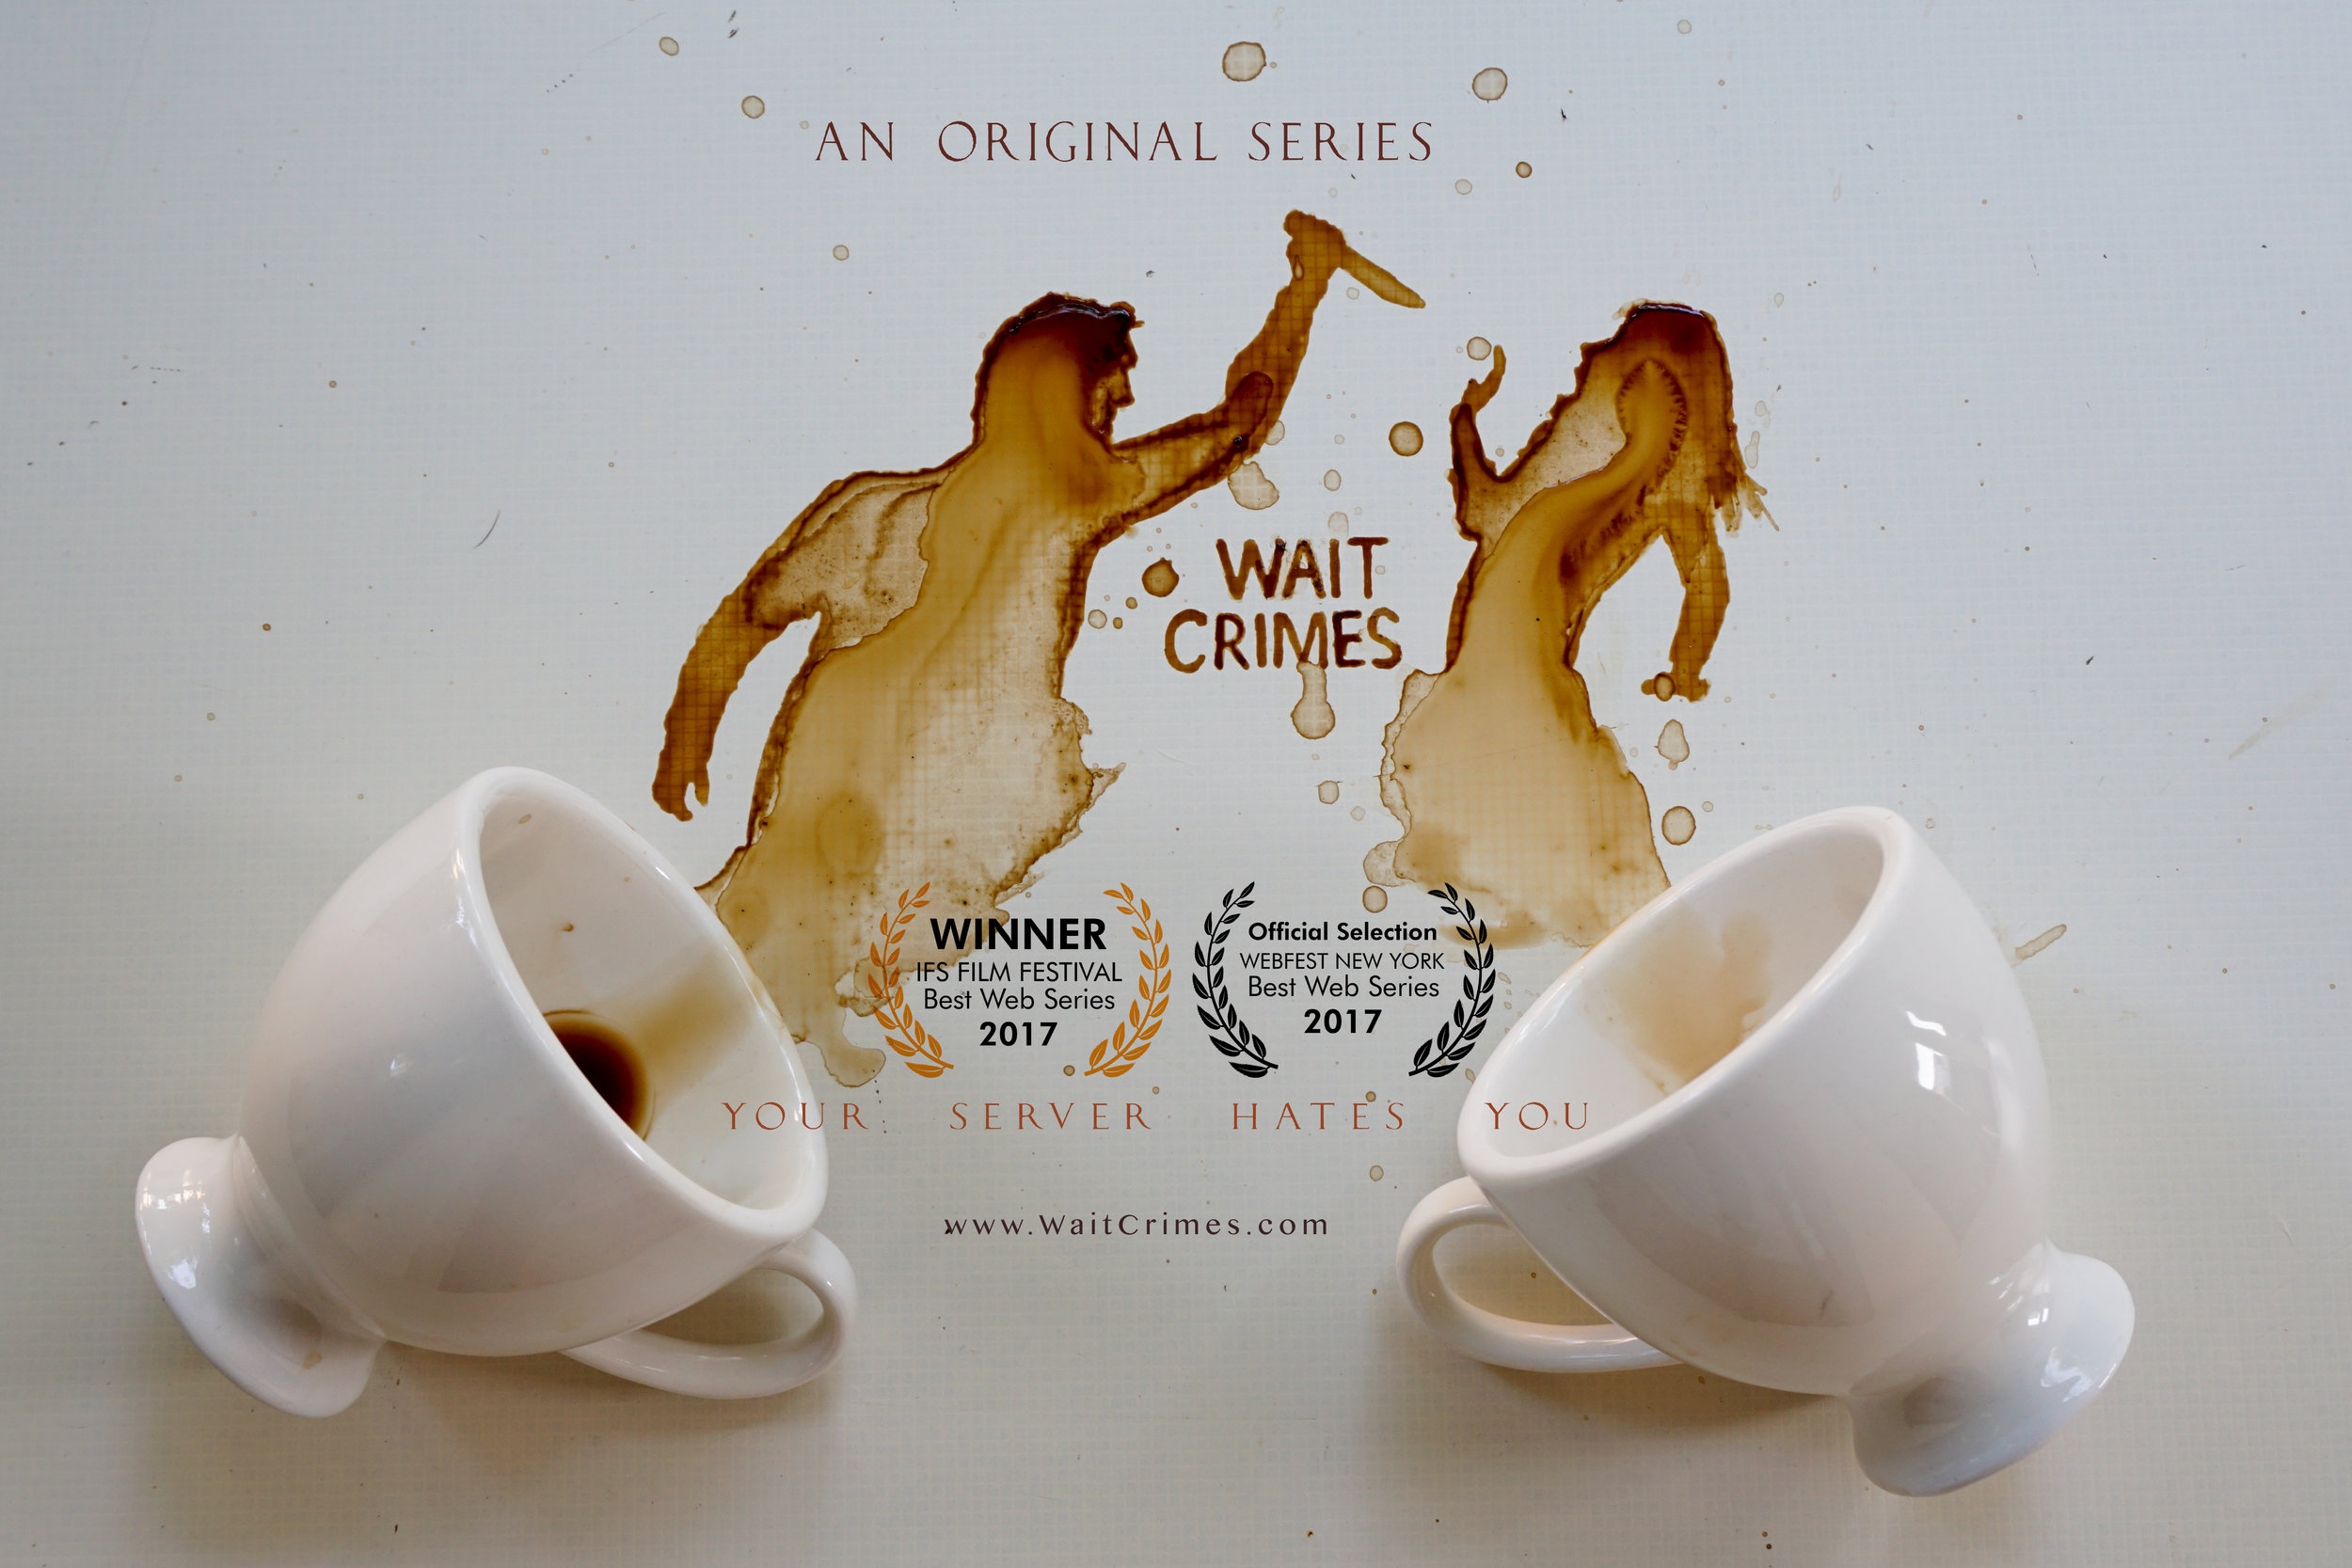 Wait Crimes   is the   #WINNER   for  BEST WEB SERIES  at  IFS FILM FESTIVAL ! We are also an  Official Selection at WEBFEST NEW YORK ! We couldn't be happier--it's like when there's dead food in the window and we're the first ones there...